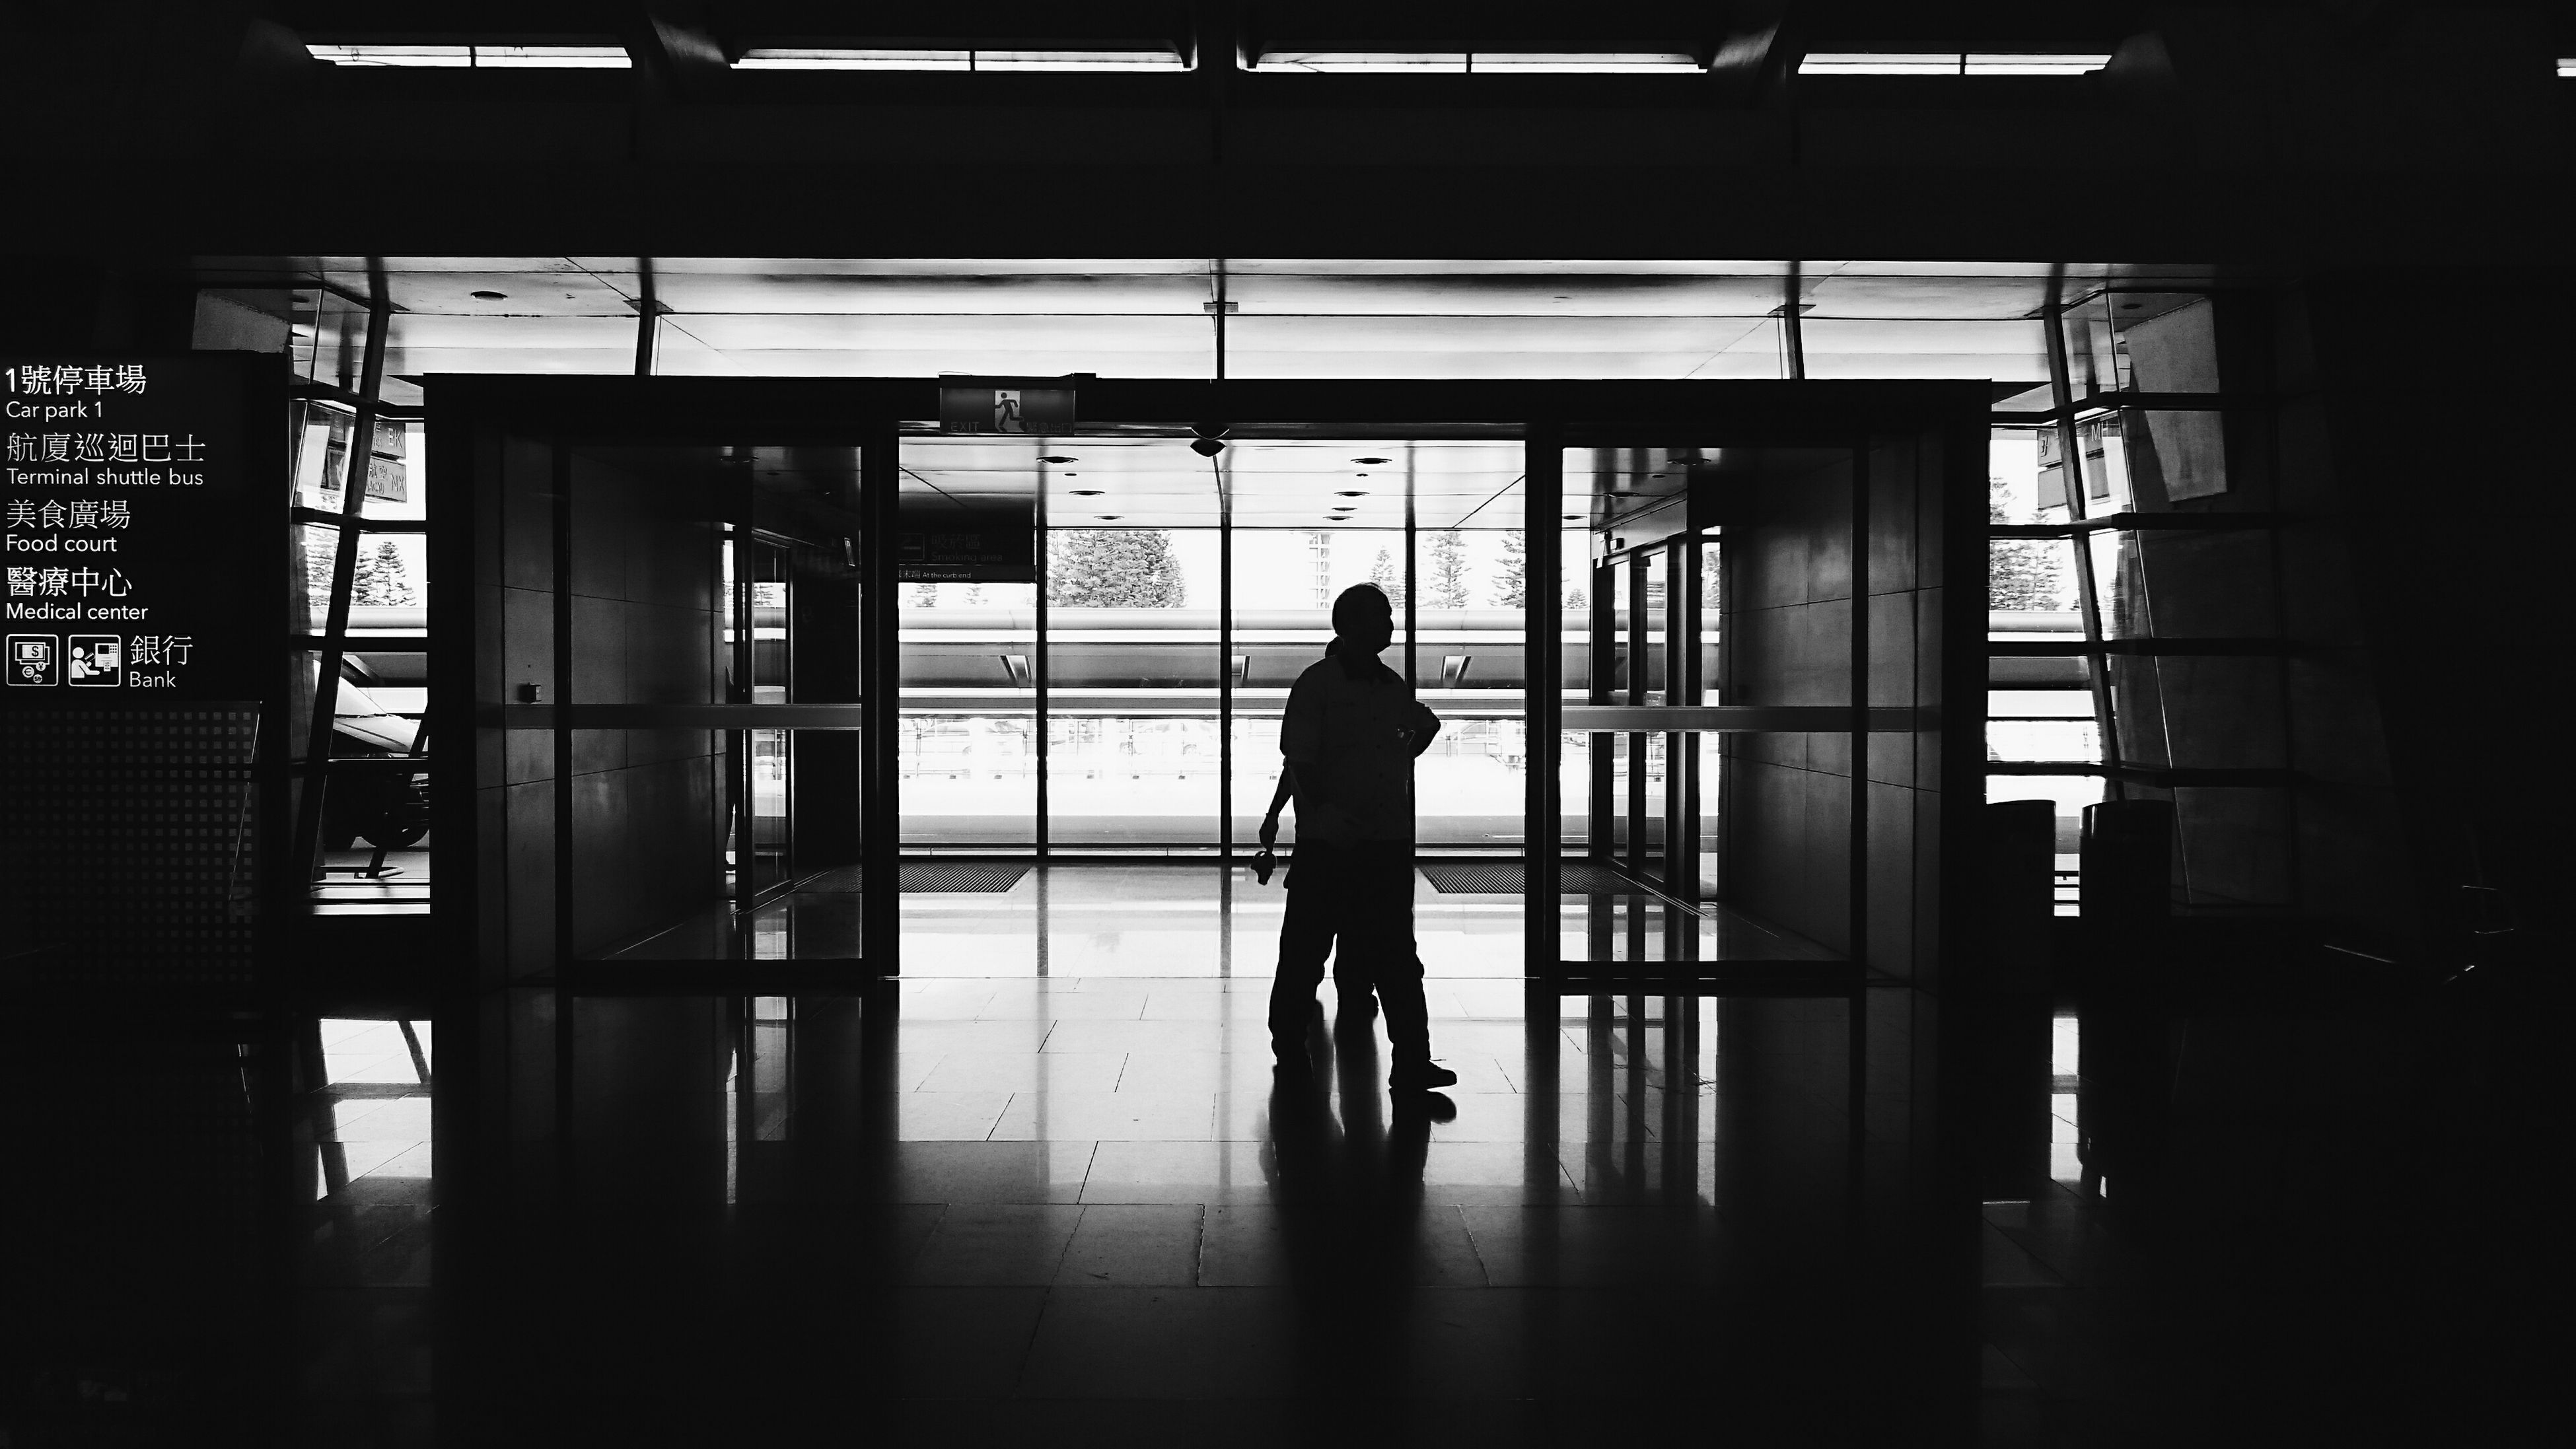 indoors, architecture, built structure, silhouette, lifestyles, men, full length, window, standing, walking, glass - material, leisure activity, person, reflection, rear view, building exterior, building, modern